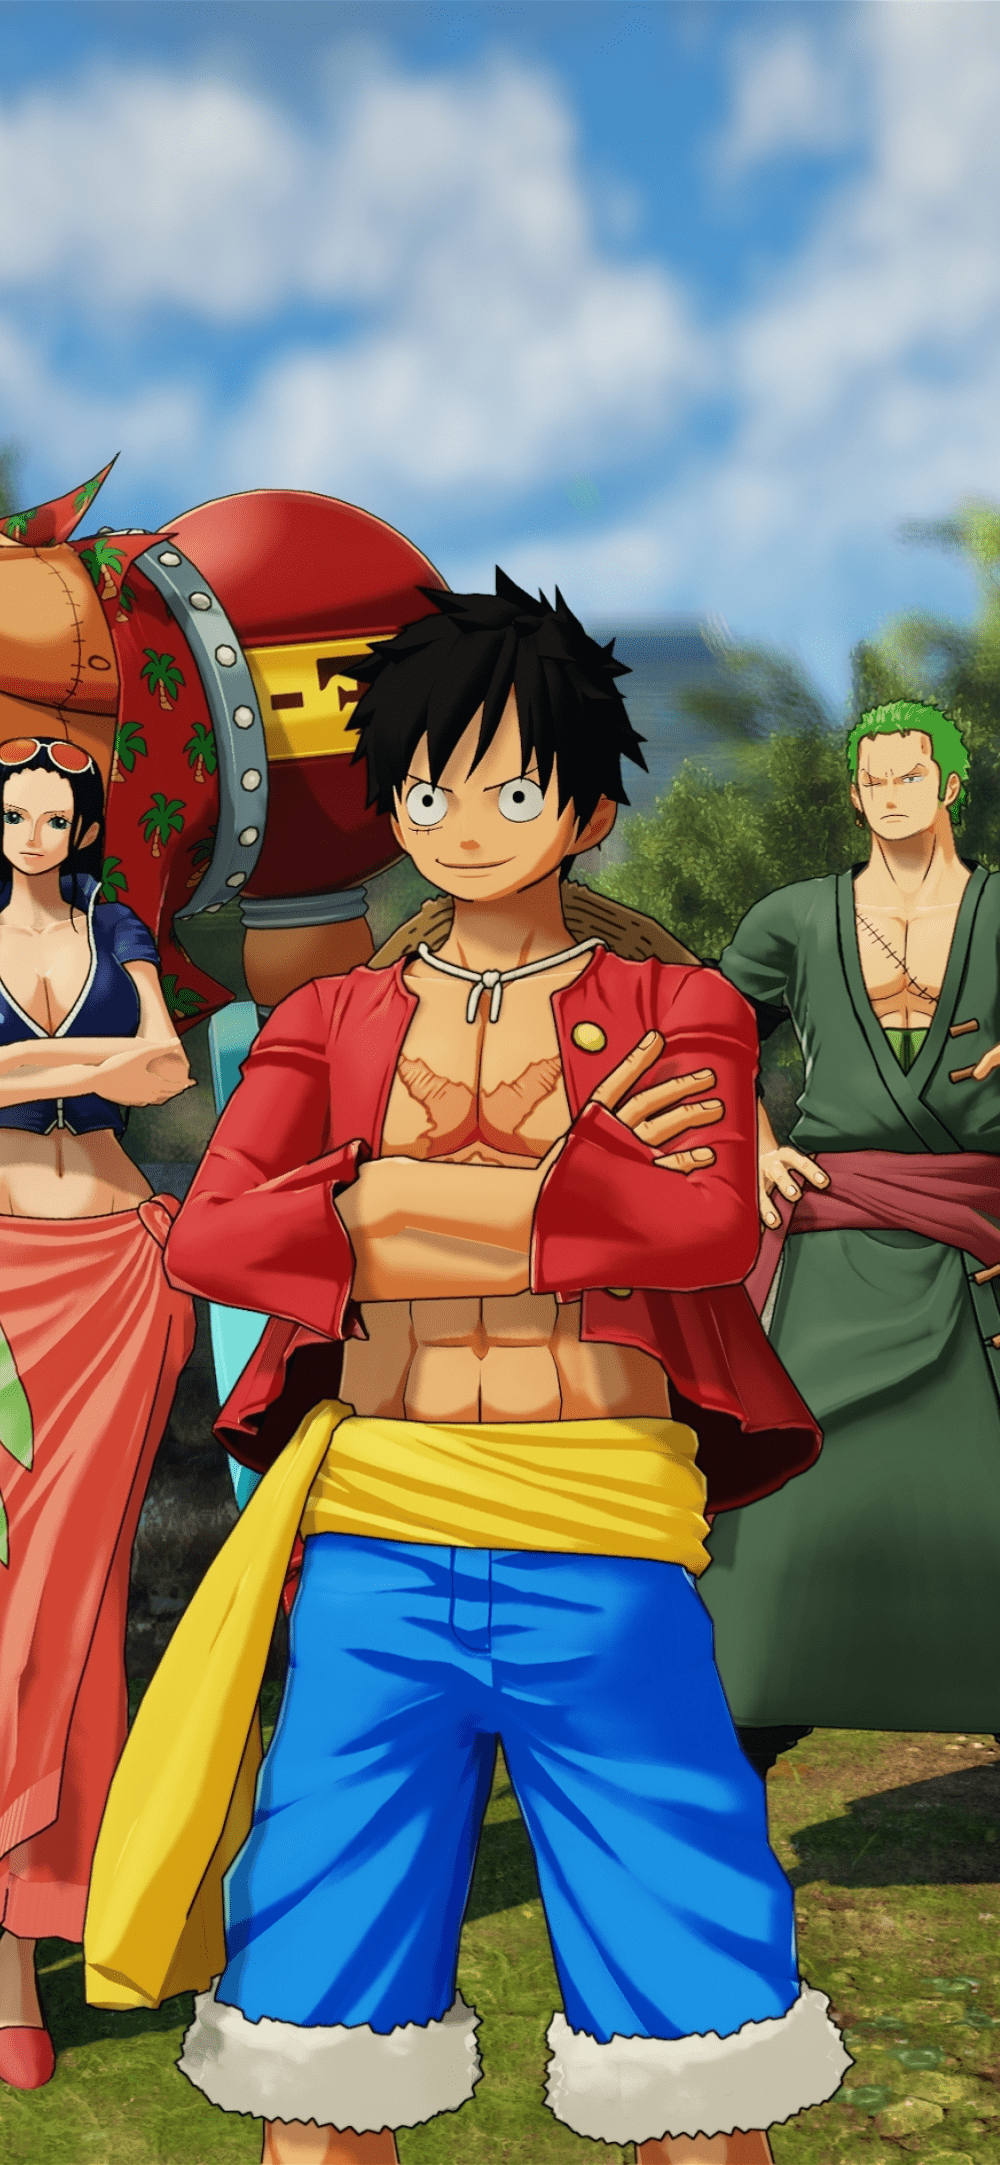 One Piece Iphone Wallpaper Discover More 1080p Cool Home Screen Lock Screen Ultra Hd Wallpap In 2021 One Piece Wallpaper Iphone Anime Wallpaper Hd Anime Wallpapers